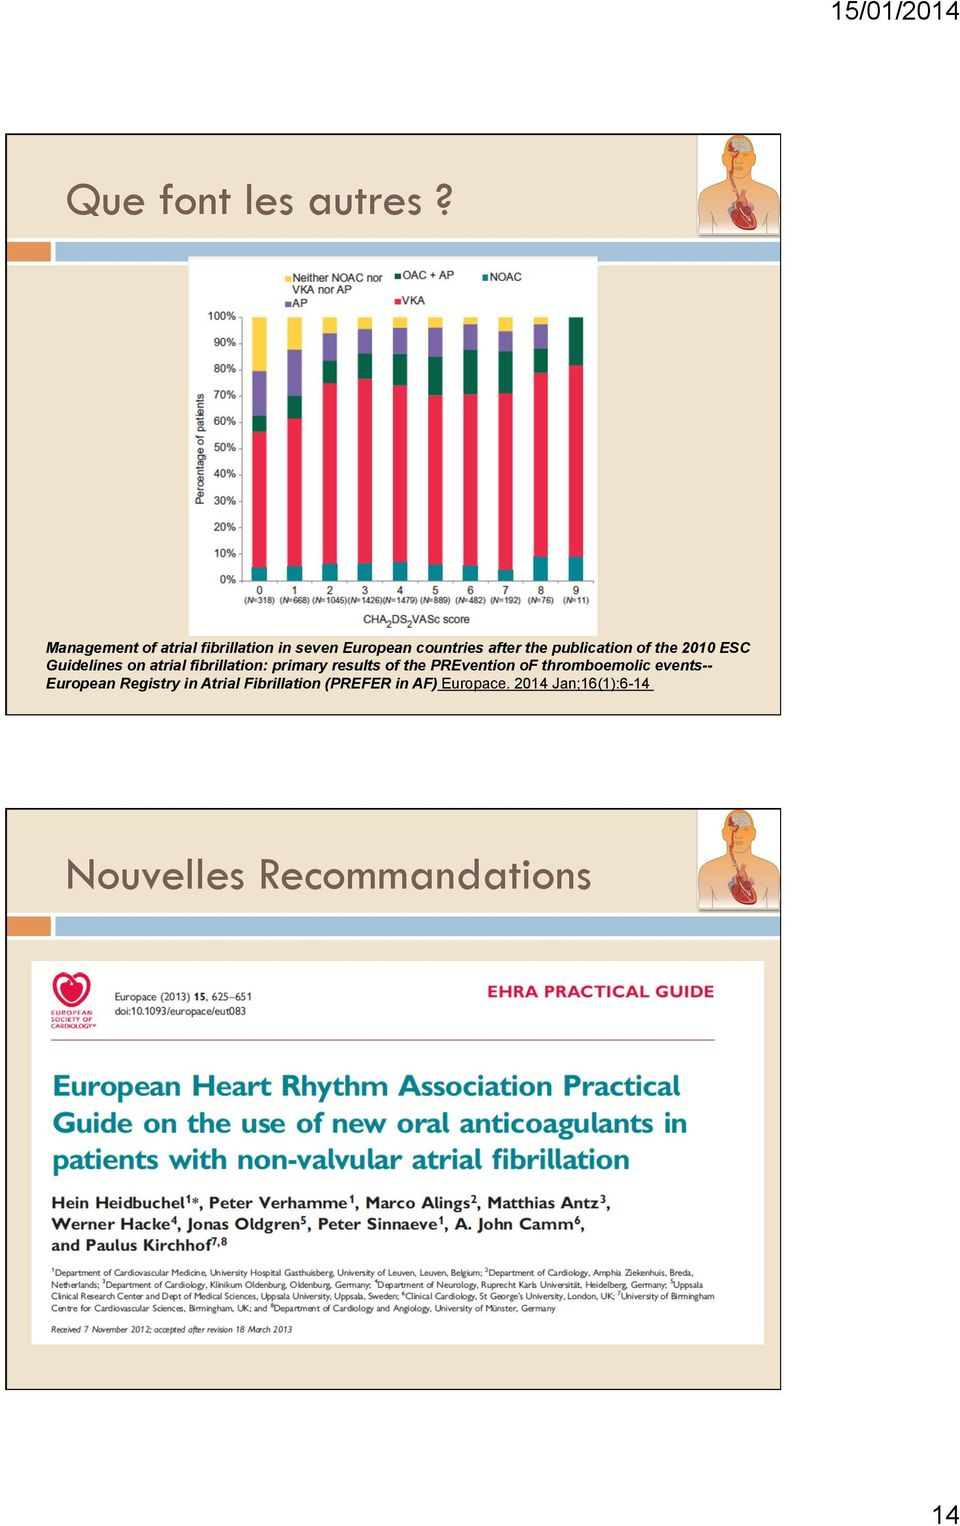 publication of the 2010 ESC Guidelines on atrial fibrillation: primary results of